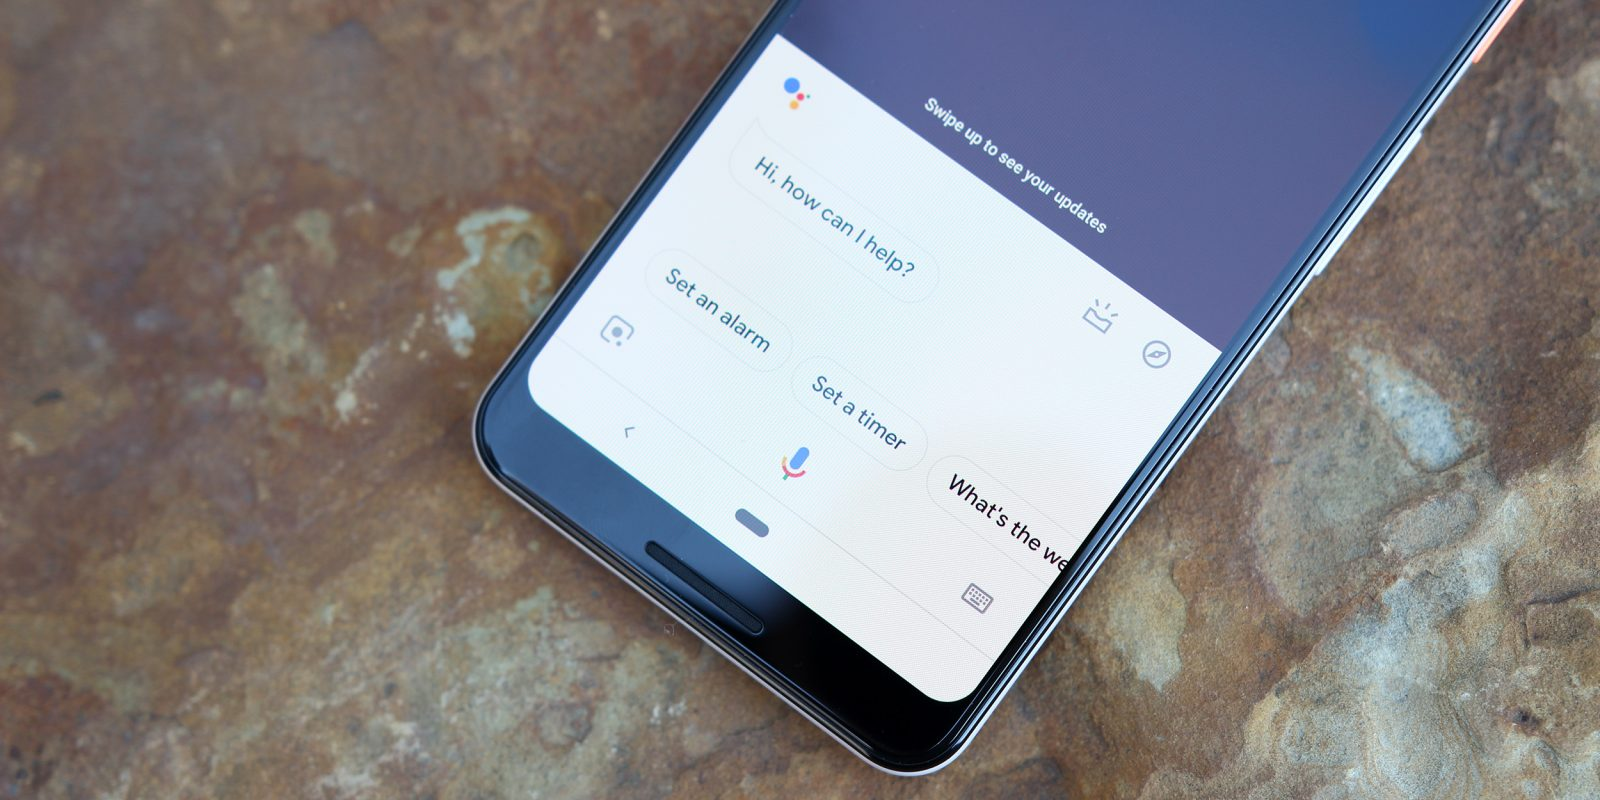 QnA VBage This week's top stories: Removing Android's voice unlock, Google's 'Night Sight,' OnePlus 6T leaks, more